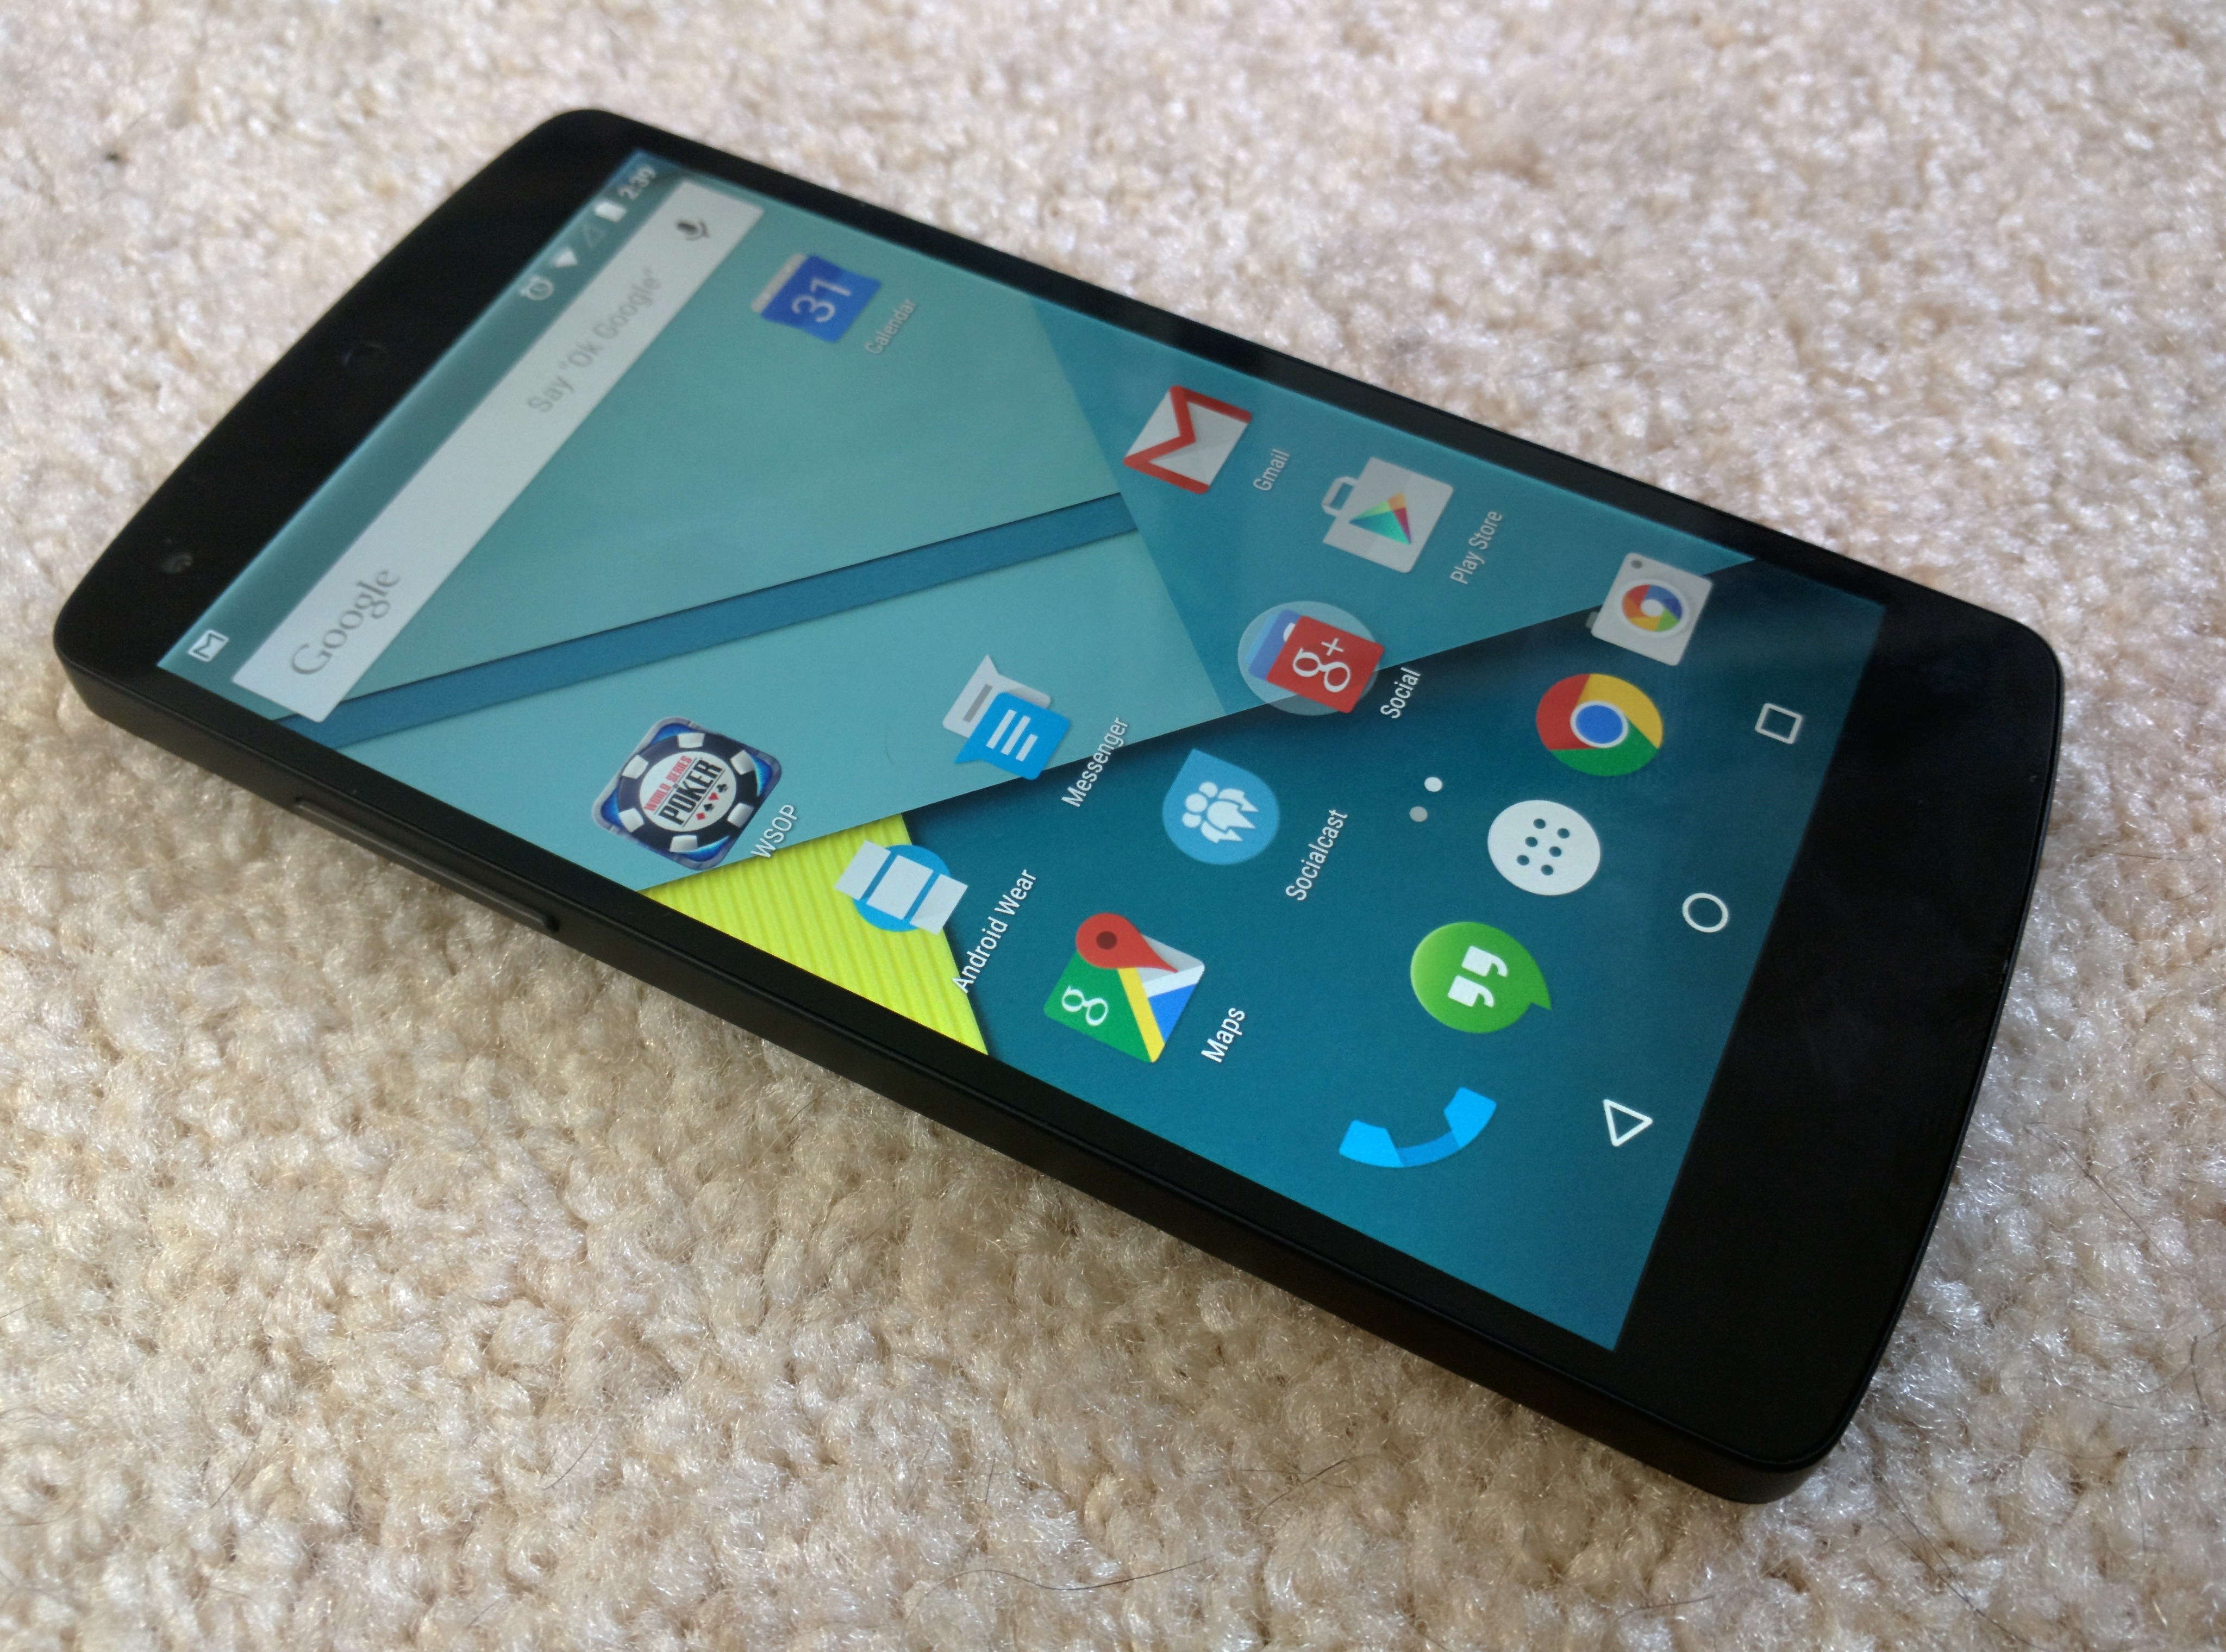 Nexus 5 with Android 5